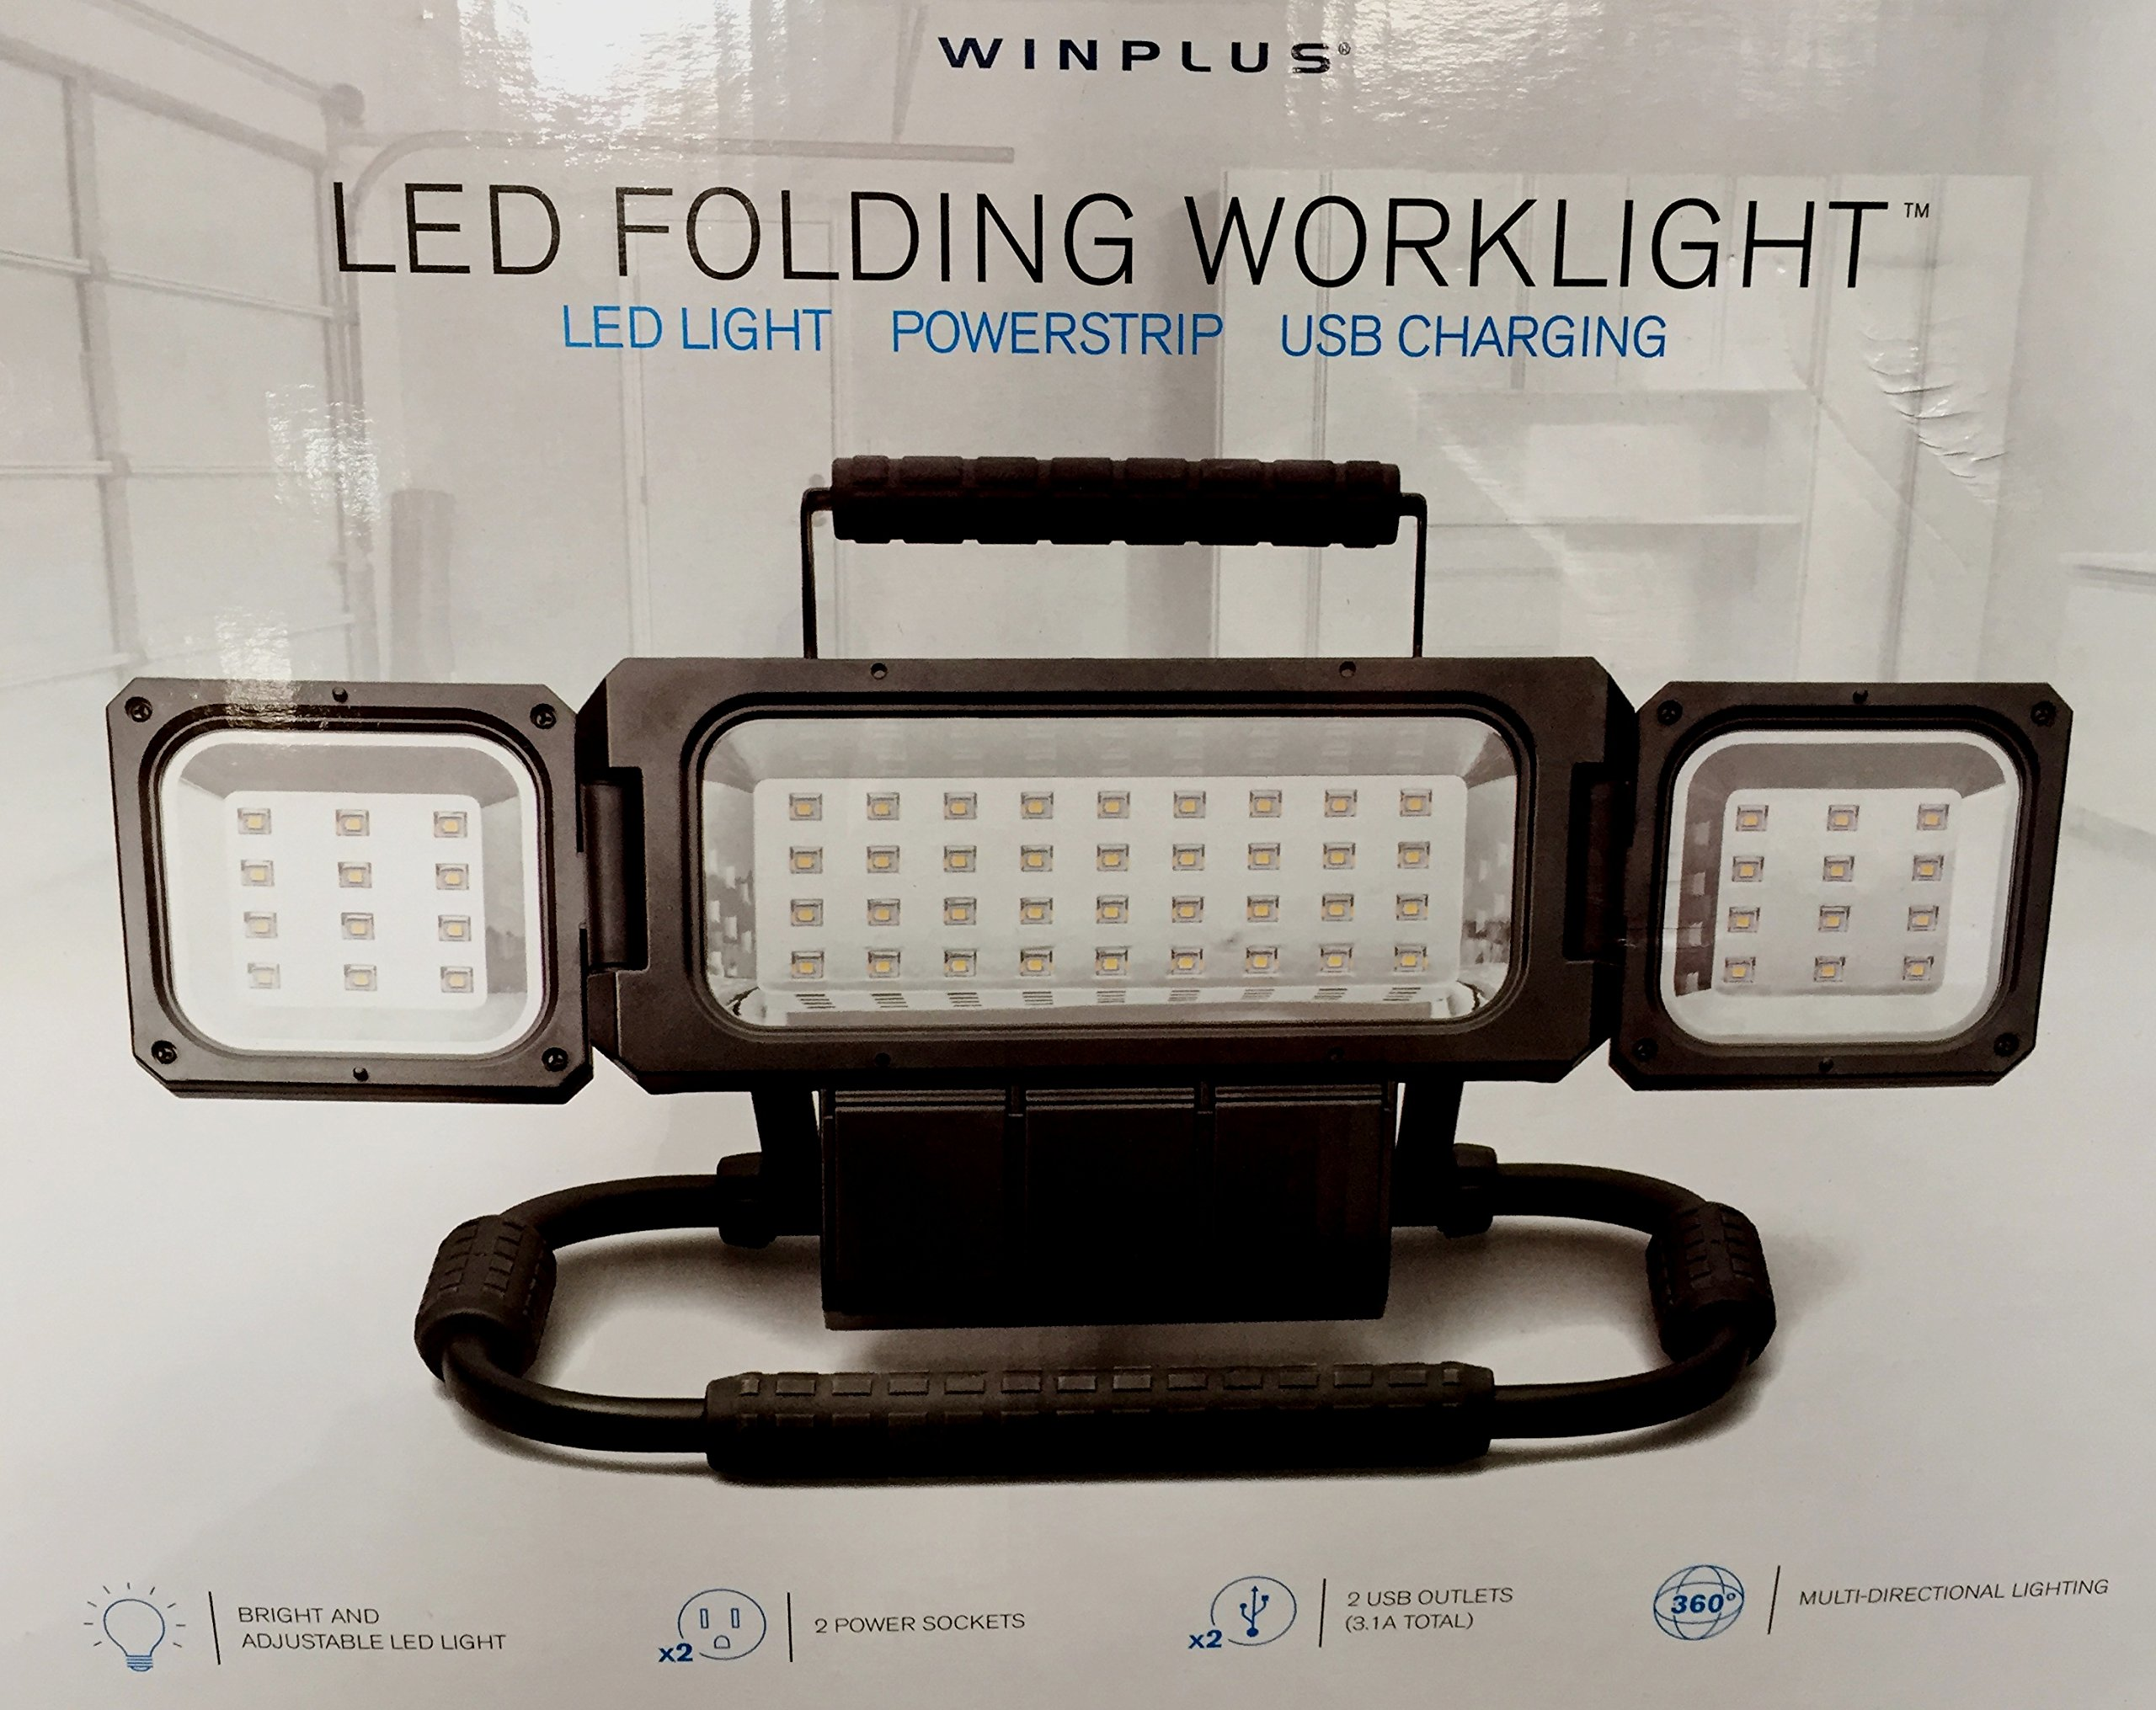 Winplus LED Folding Worklight